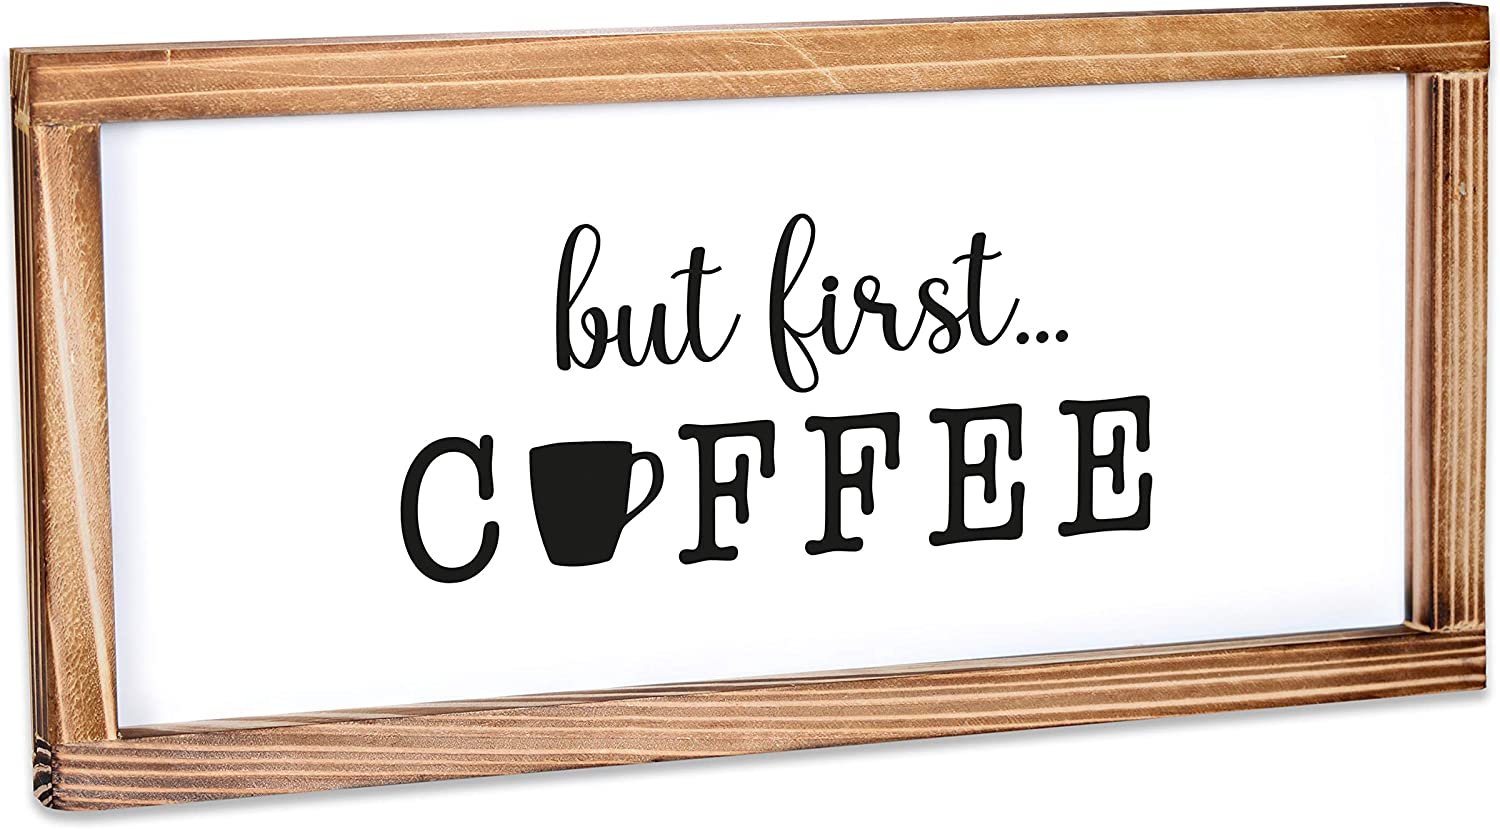 MAINEVENT But First Coffee Sign - Funny Kitchen Sign - Farmhouse Kitchen Decor, Kitchen Wall Decor, Rustic Home Decor, Country Kitchen Decor with Solid Wood Frame 8x17 Inch